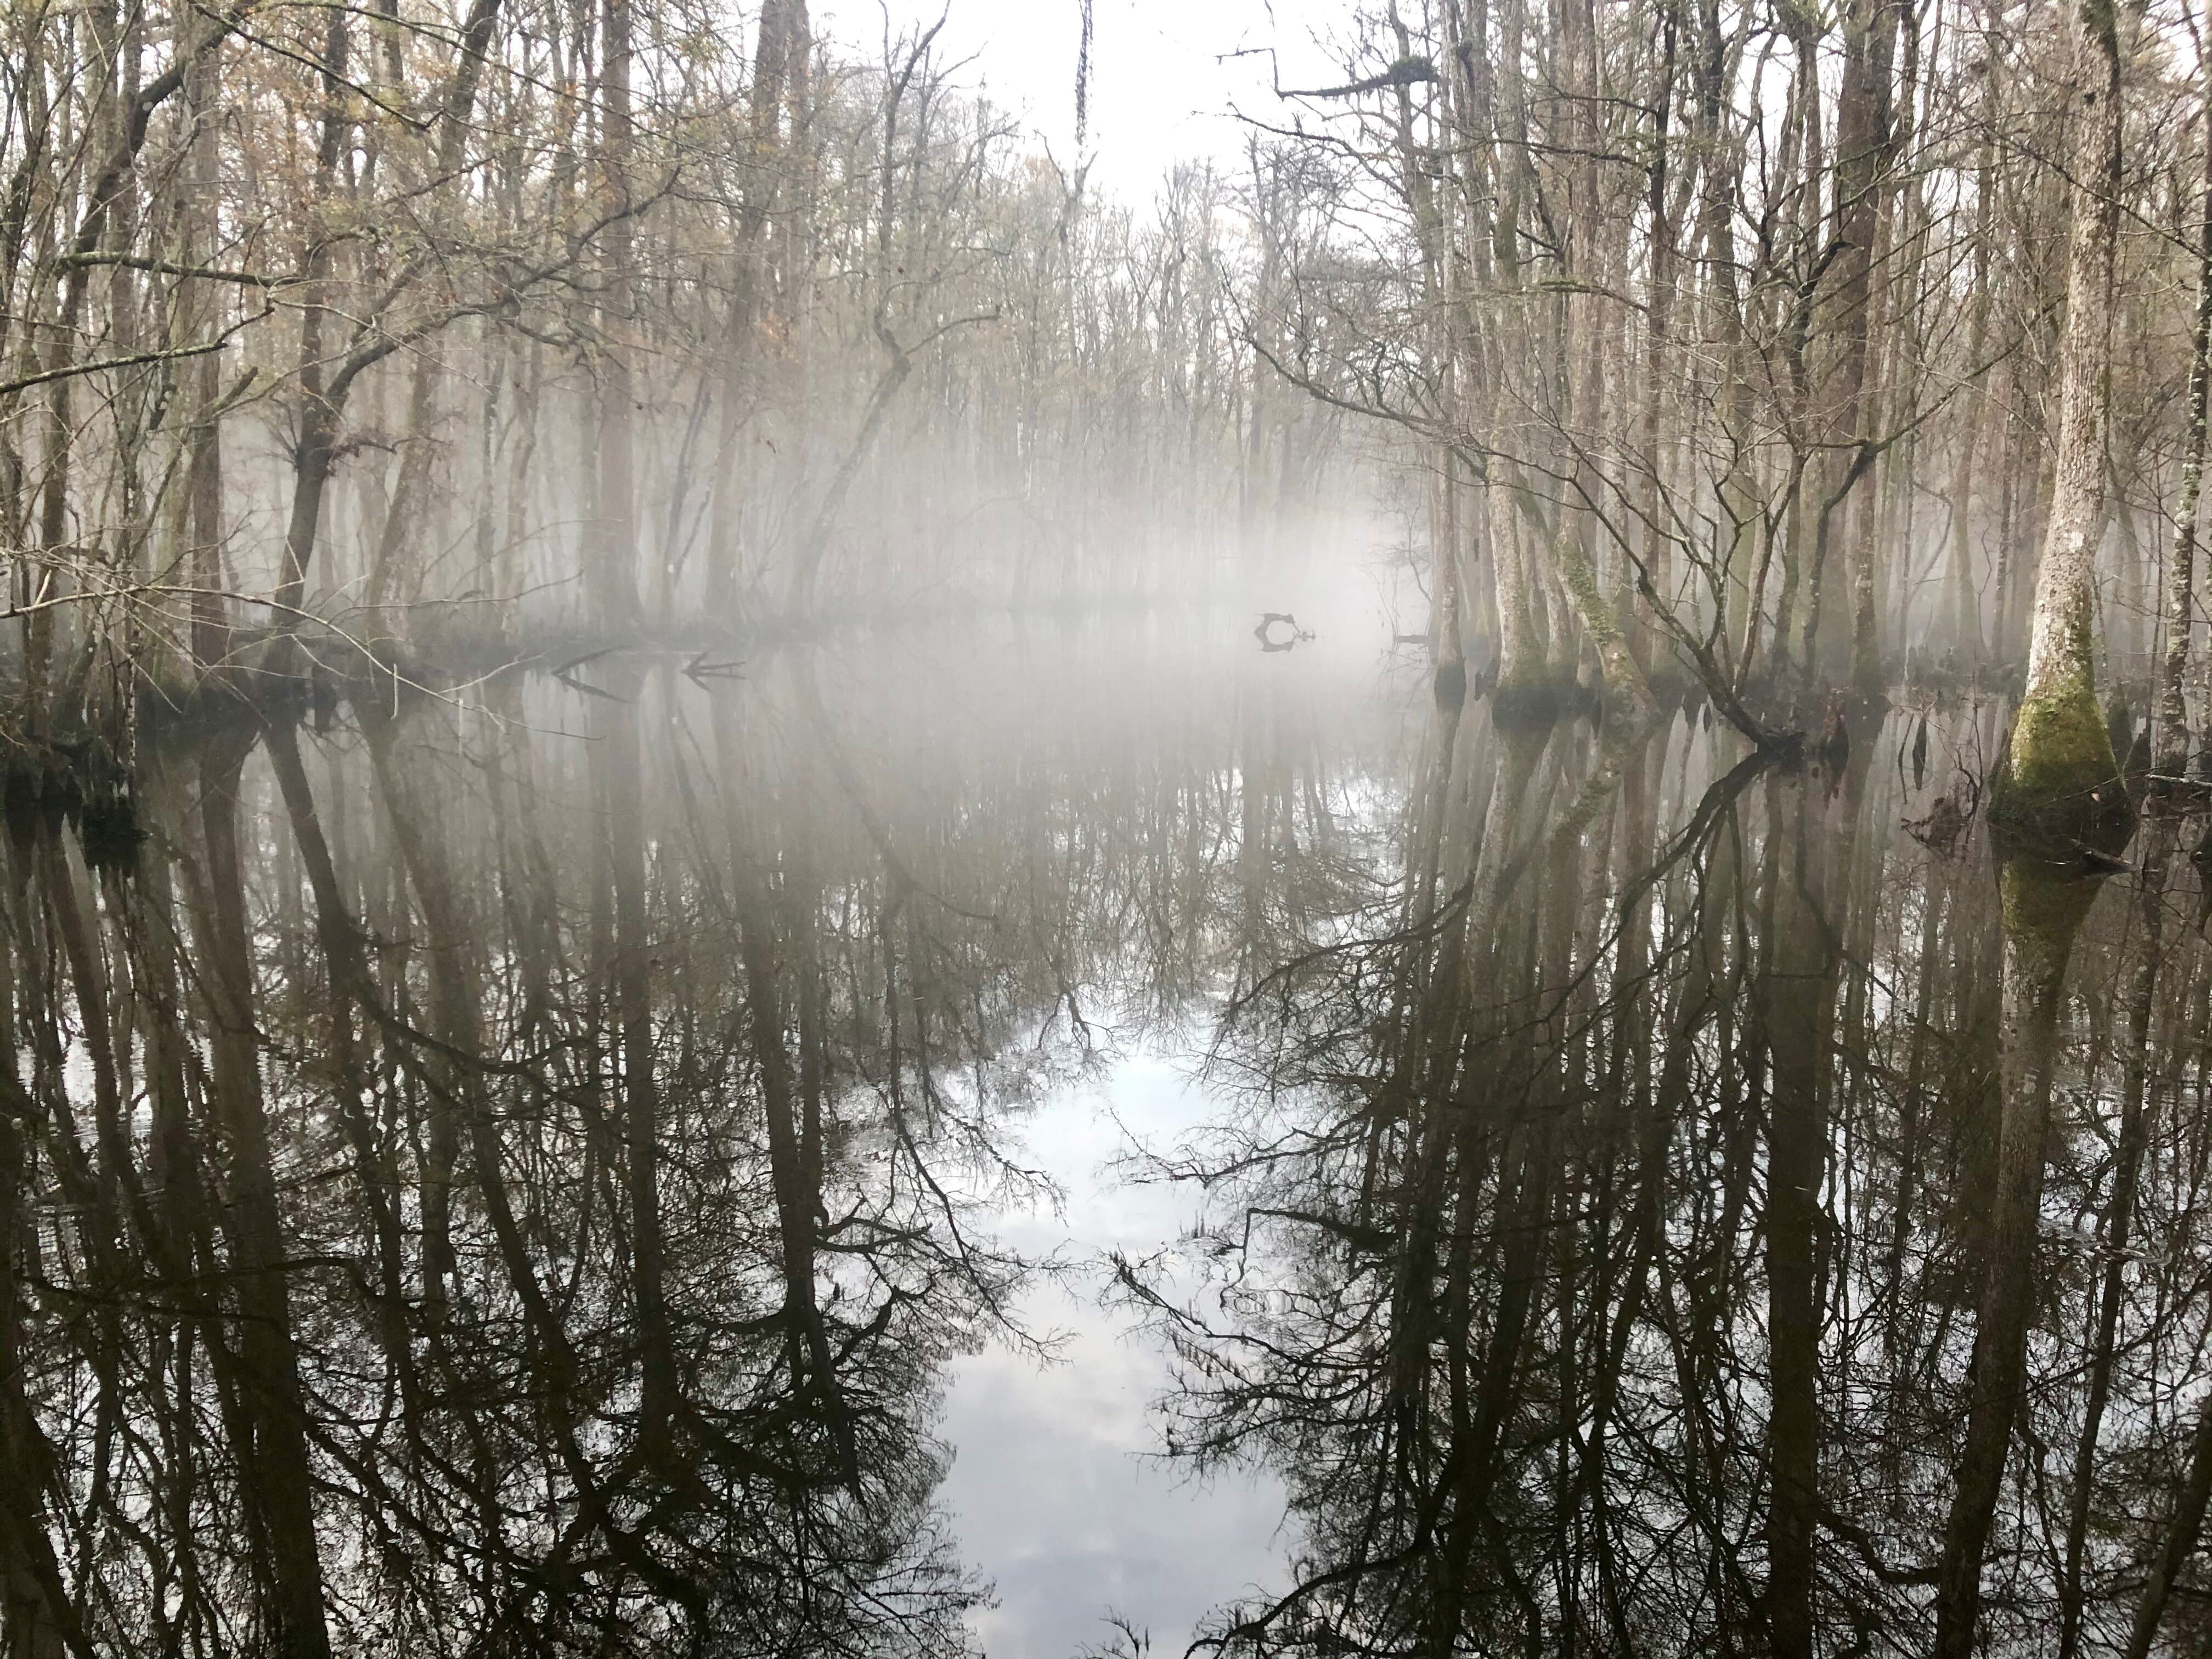 Fog over a mirroring lake